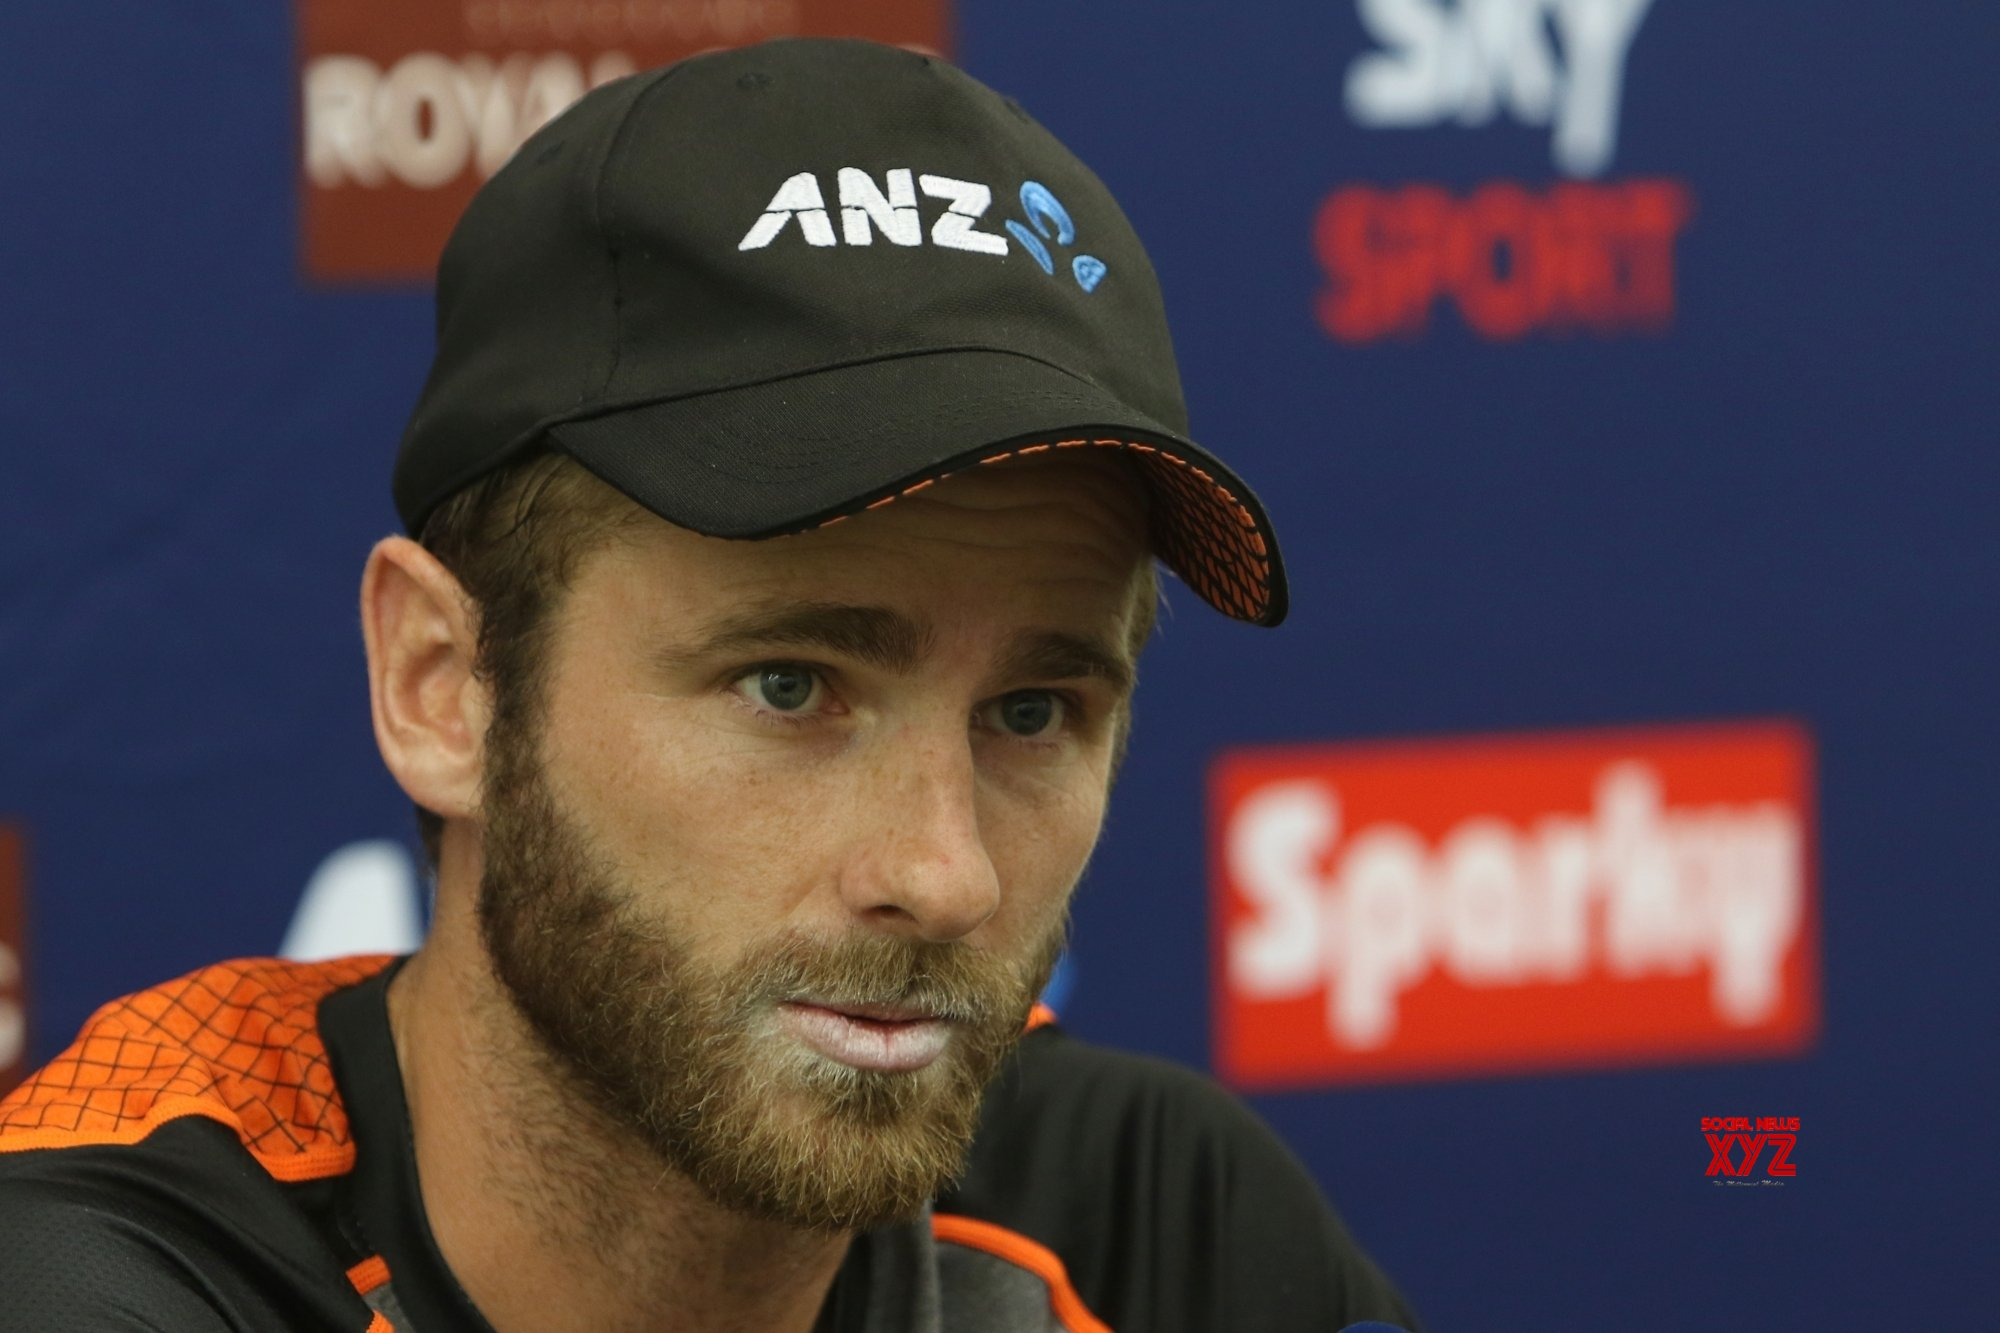 IPL was an opportunity for me to learn, says Williamson